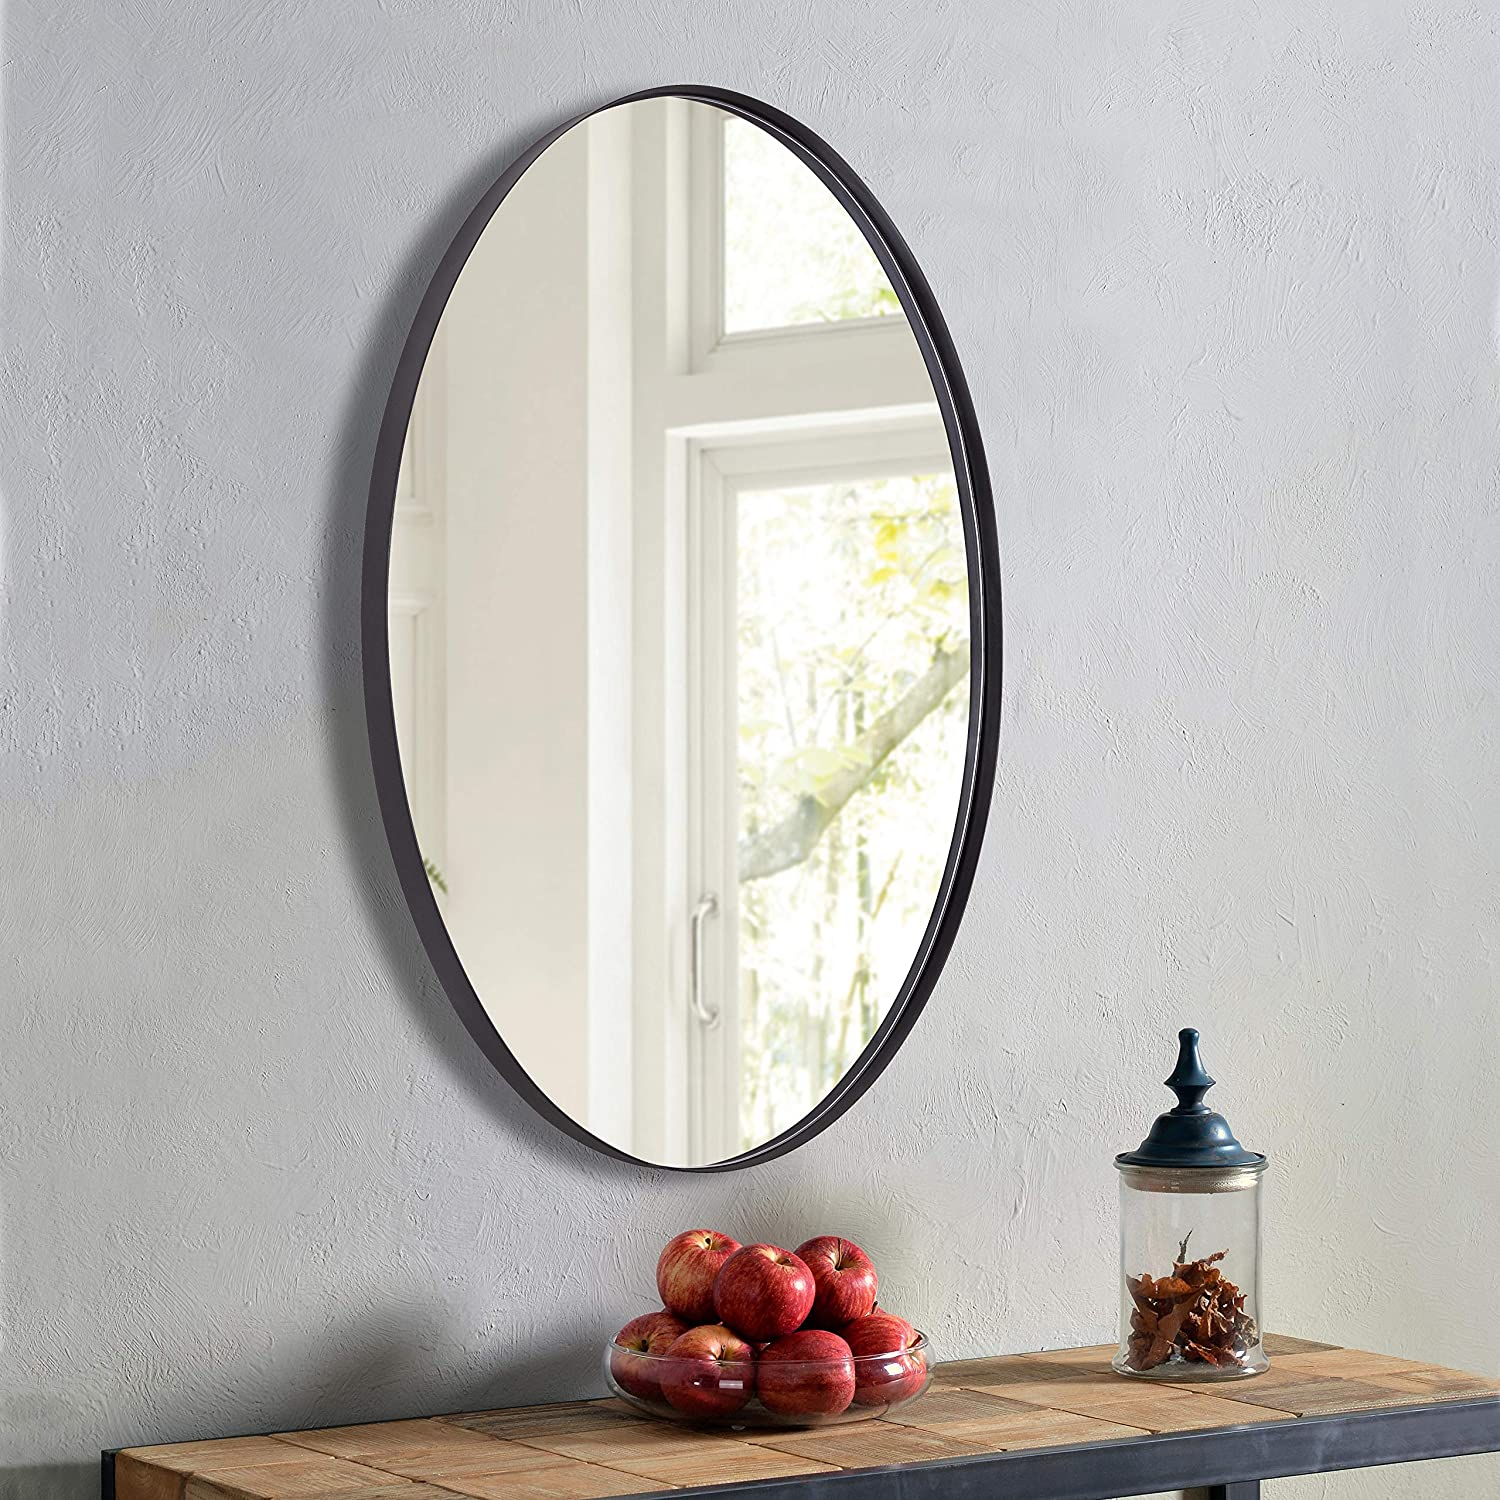 Clavie Oval Mirror for Wall Stainless Steel 22 x 30 Inch Bathroom Mirror for Wall Modern Large Wall Mirror Decorative Wall Mounted Mirror Design for Bathroom, Living Room, Bedroom, Entryways